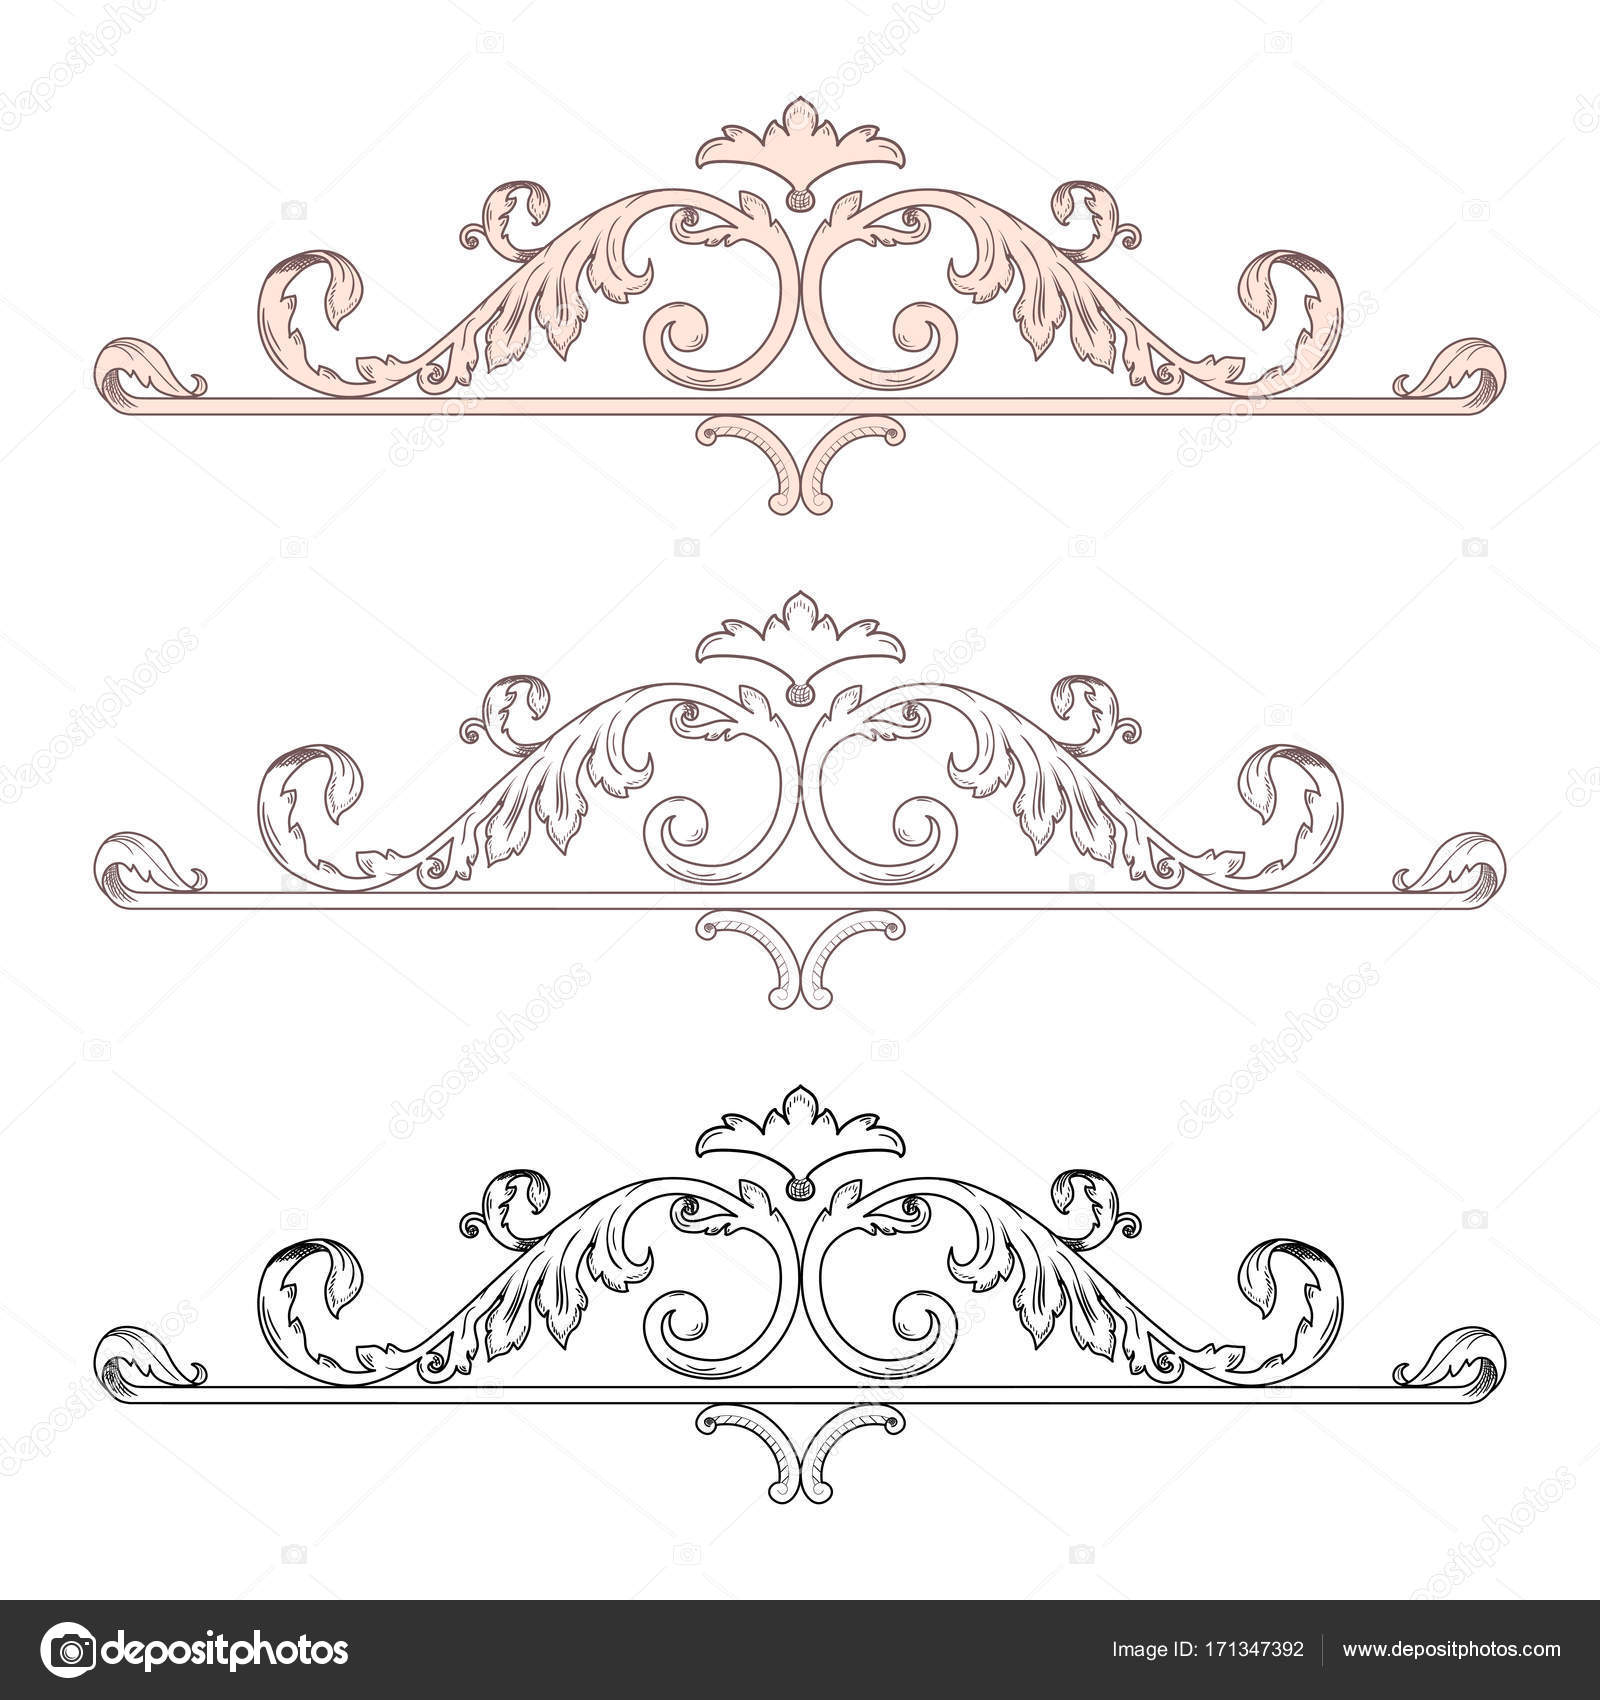 victorian frame design. Vintage Baroque Victorian Frame Border Monogram Floral Ornament Leaf Scroll Engraved Retro Flower Pattern Decorative Design